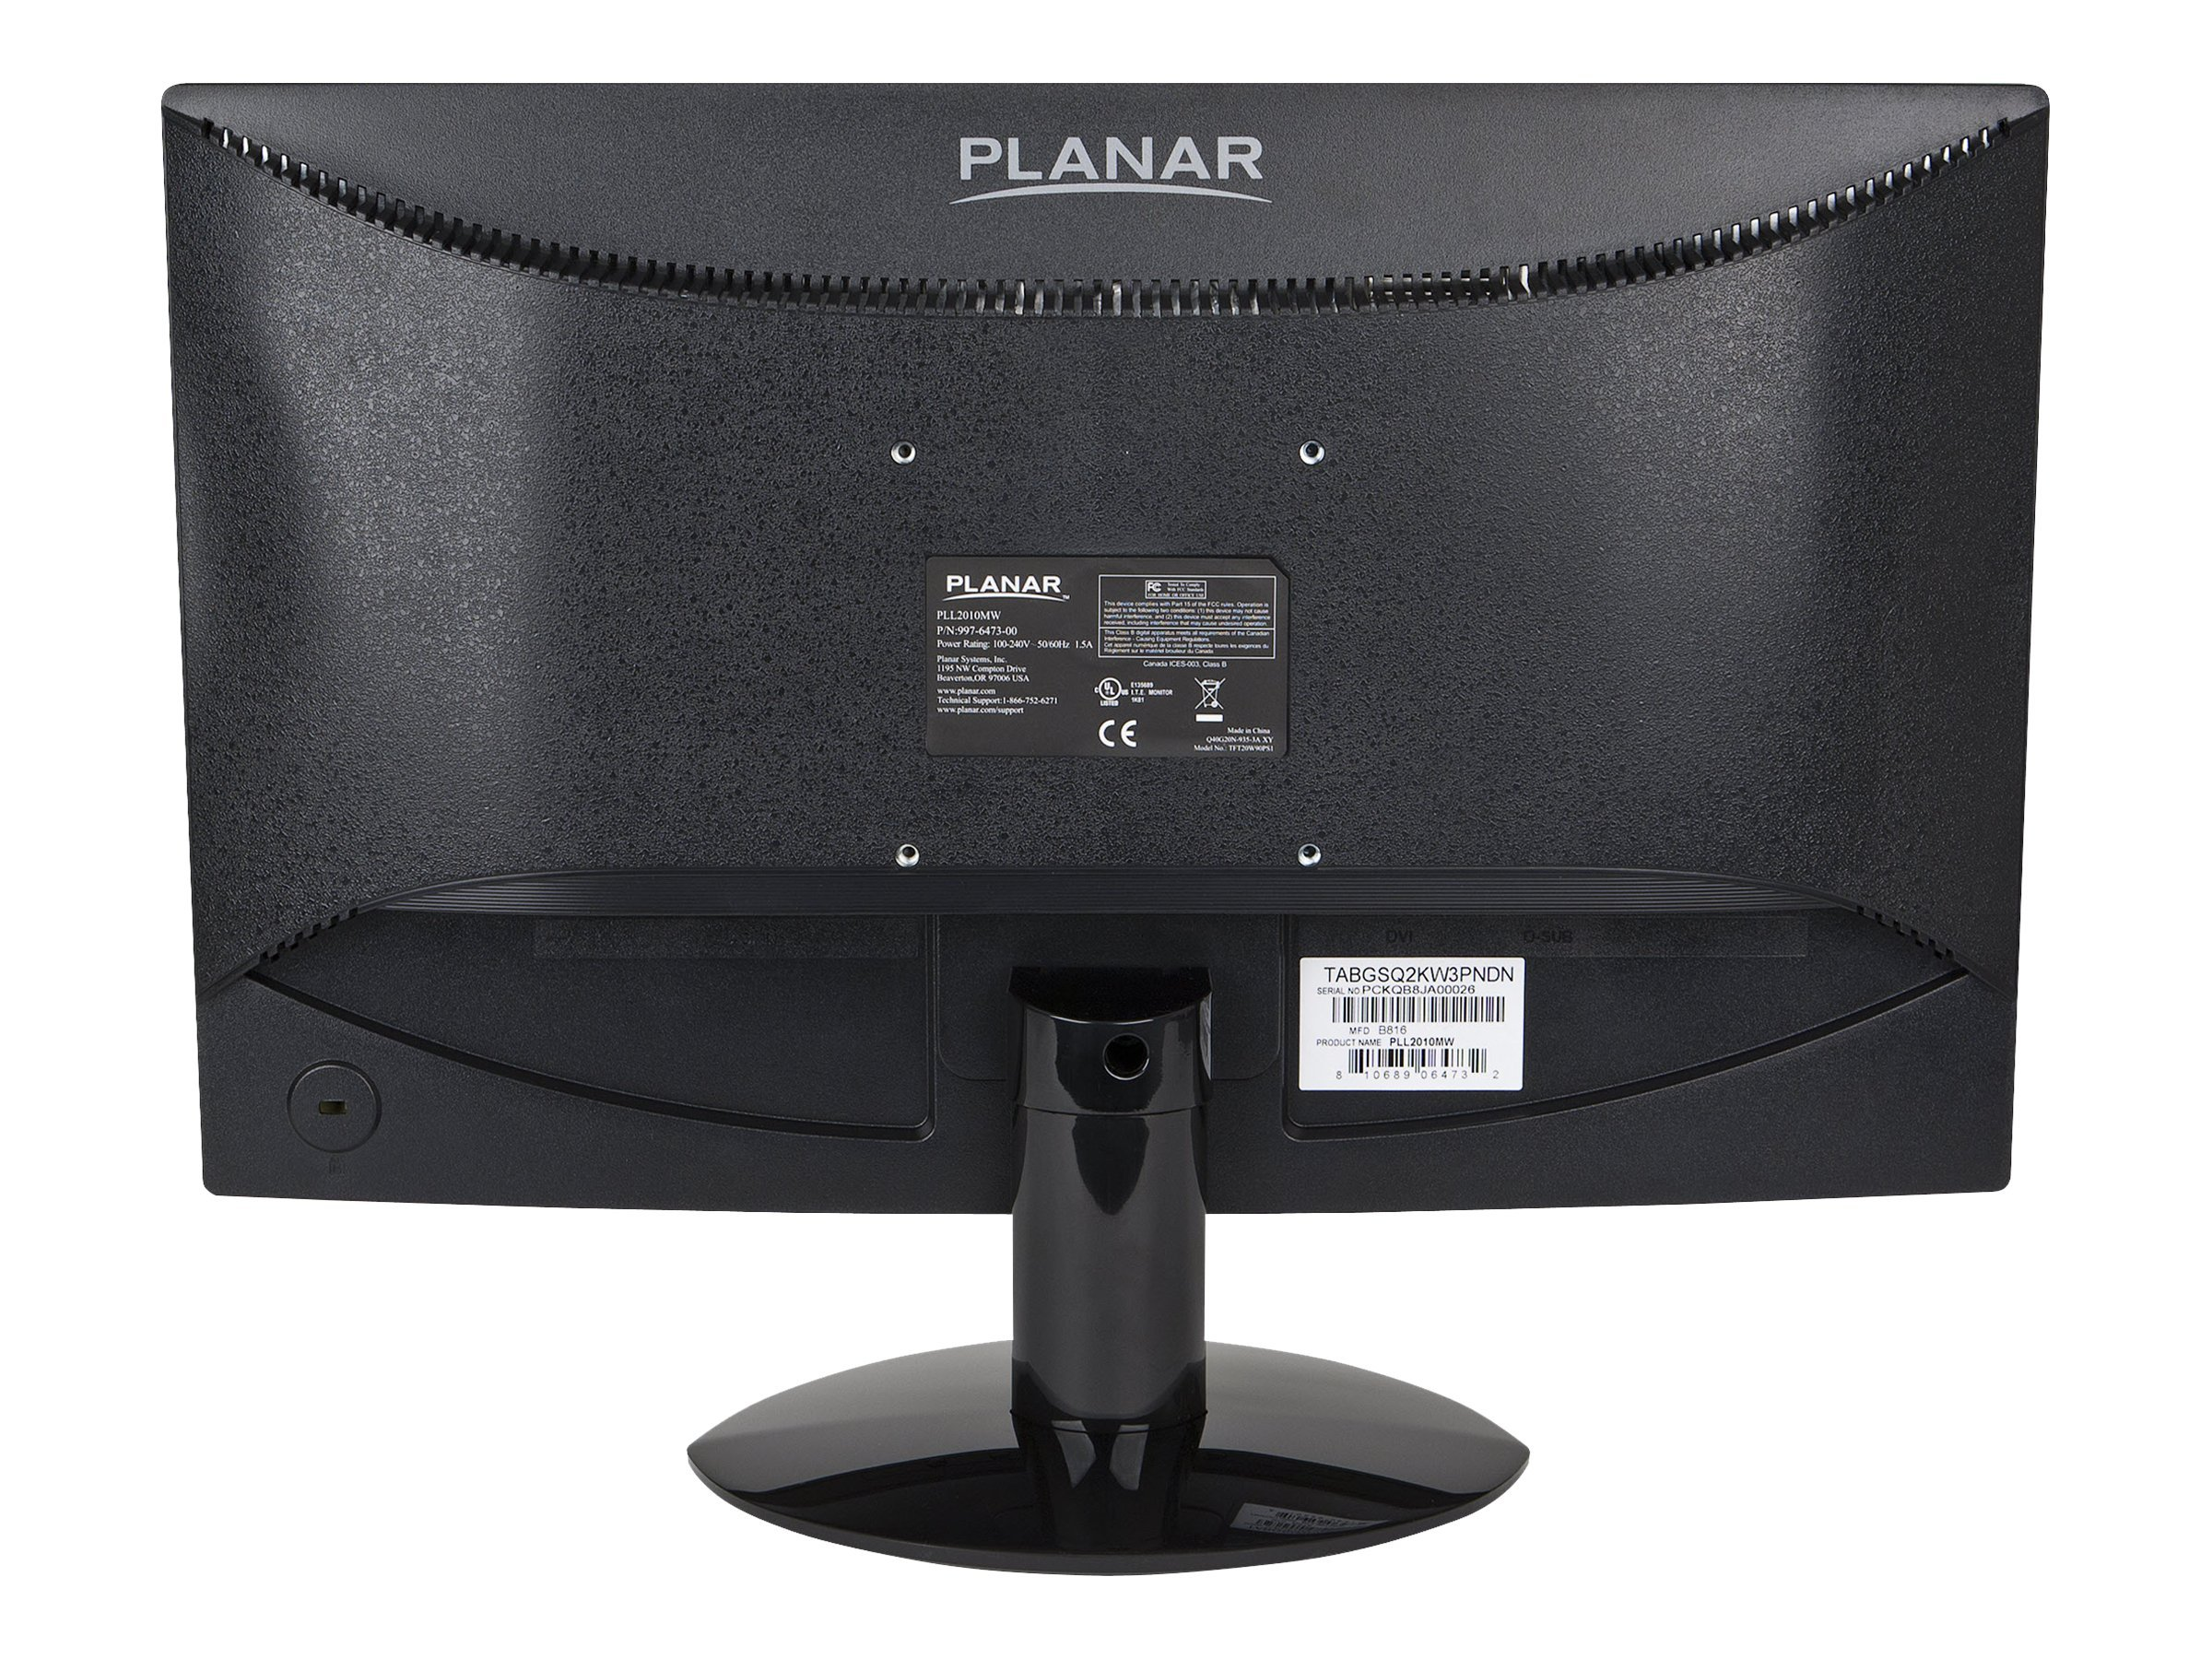 Planar 19.5 PLL2010MW LED-LCD Monitor, Black, 997-7305-00